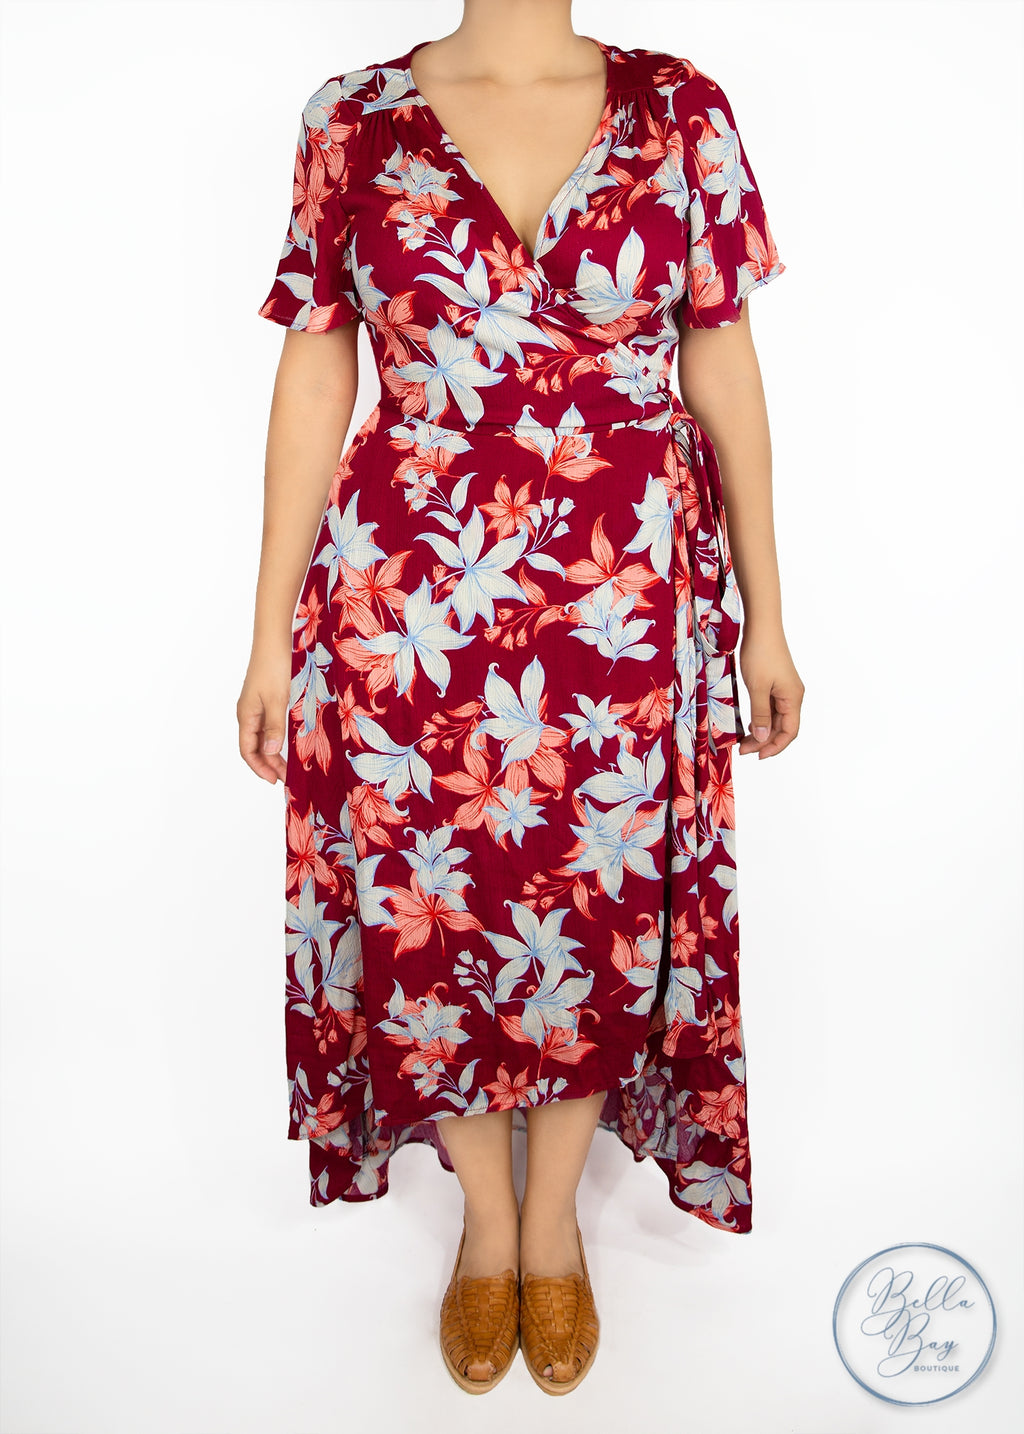 Paisley Raye Primrose Wrap Dress- Burgundy Floral (XL) - Paisley Raye with Bella Bay Boutique, shop now at  https://shopbellabay.com/ or locally in Newport Oregon